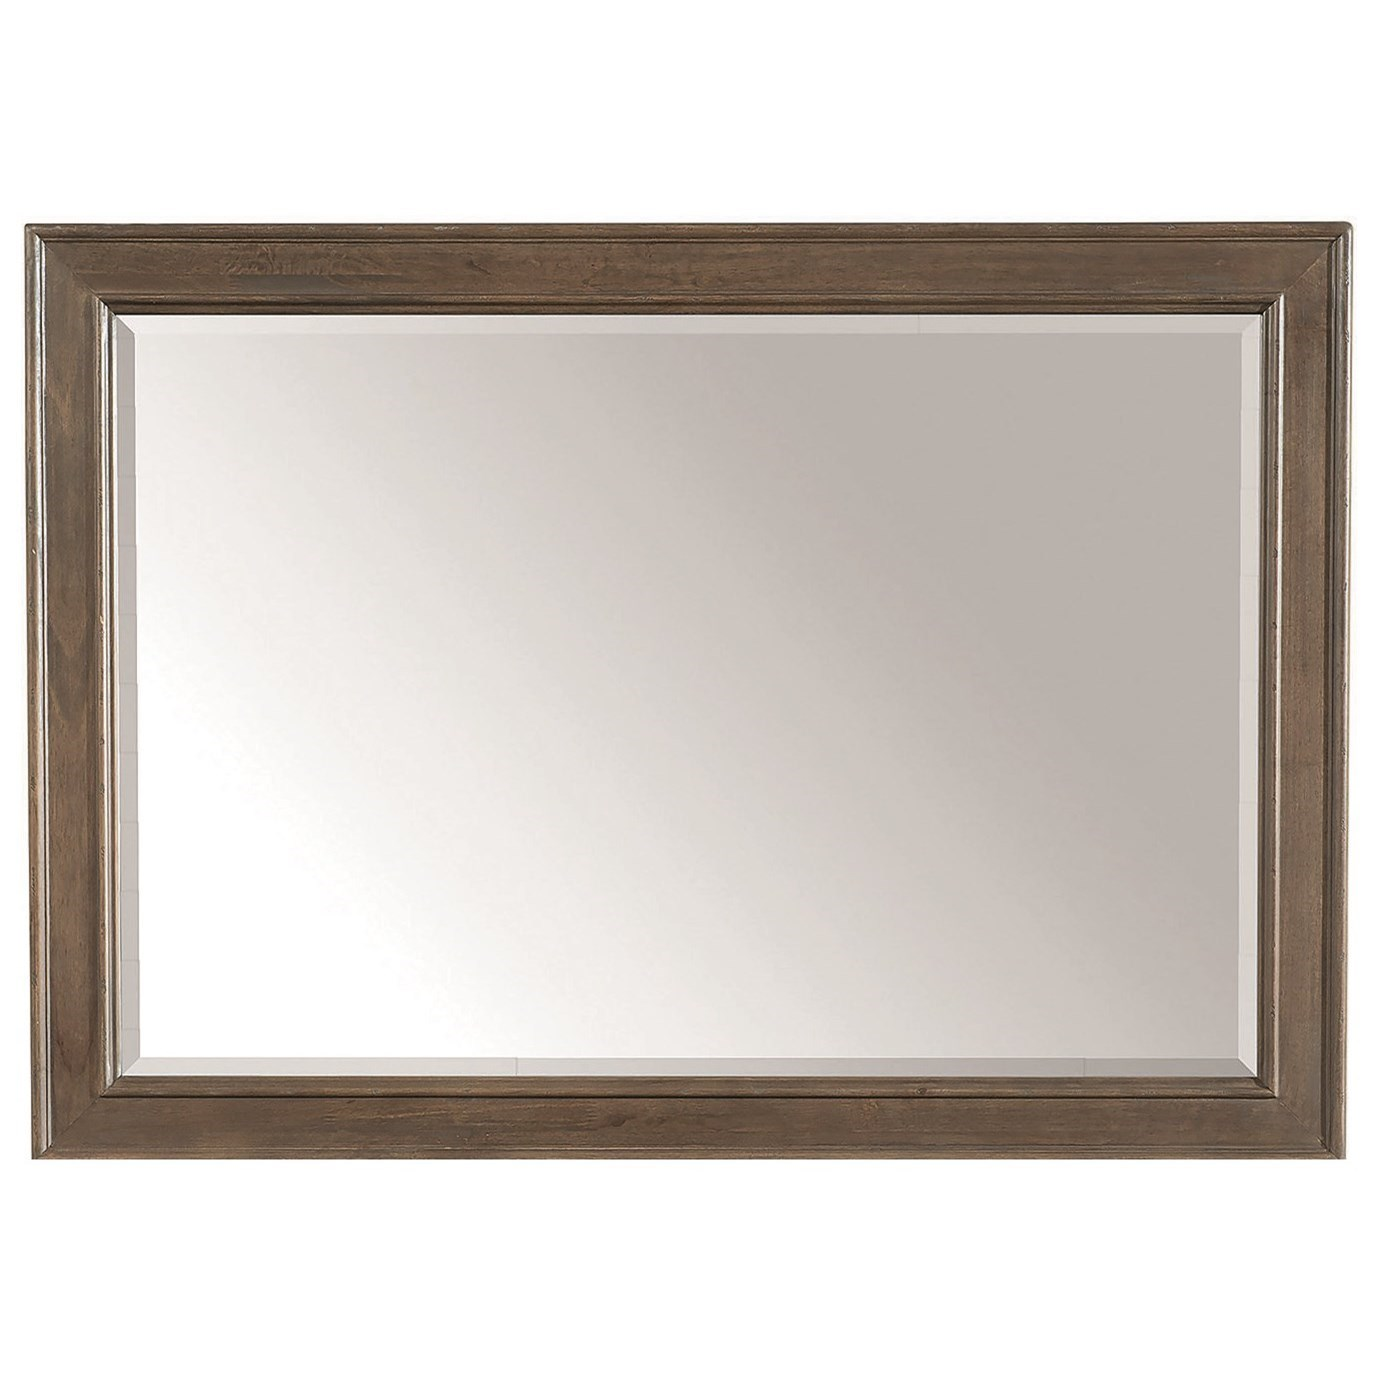 Bassett Provence Mirror - Item Number: 2779-0231